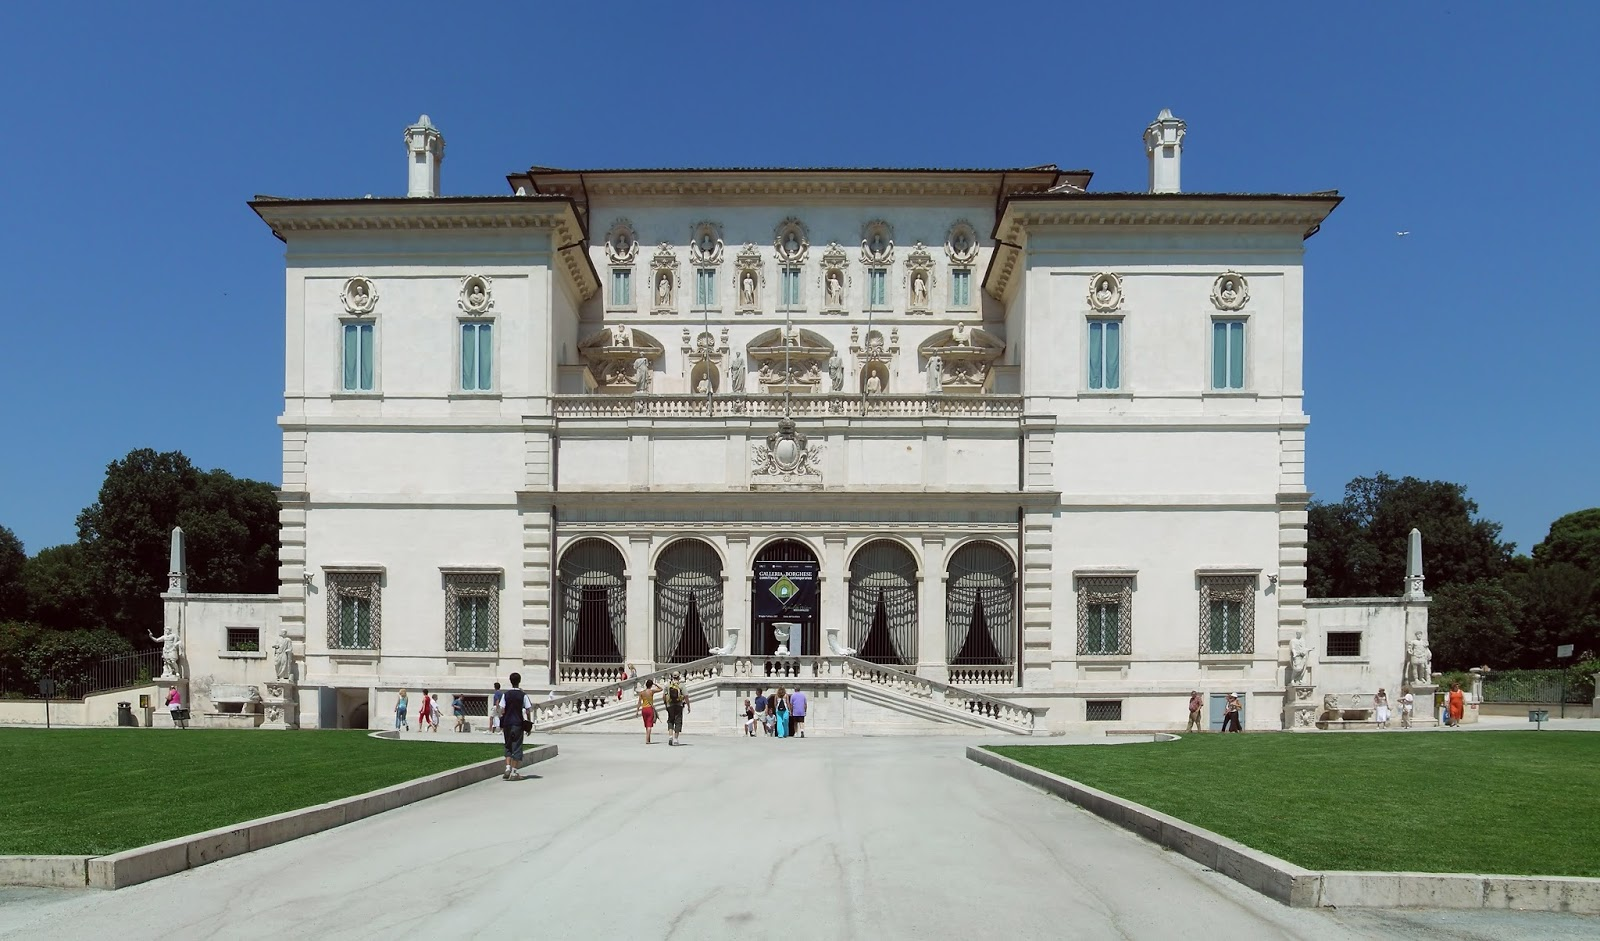 These Are The 25 Best Museums In The World - Galleria Borghese